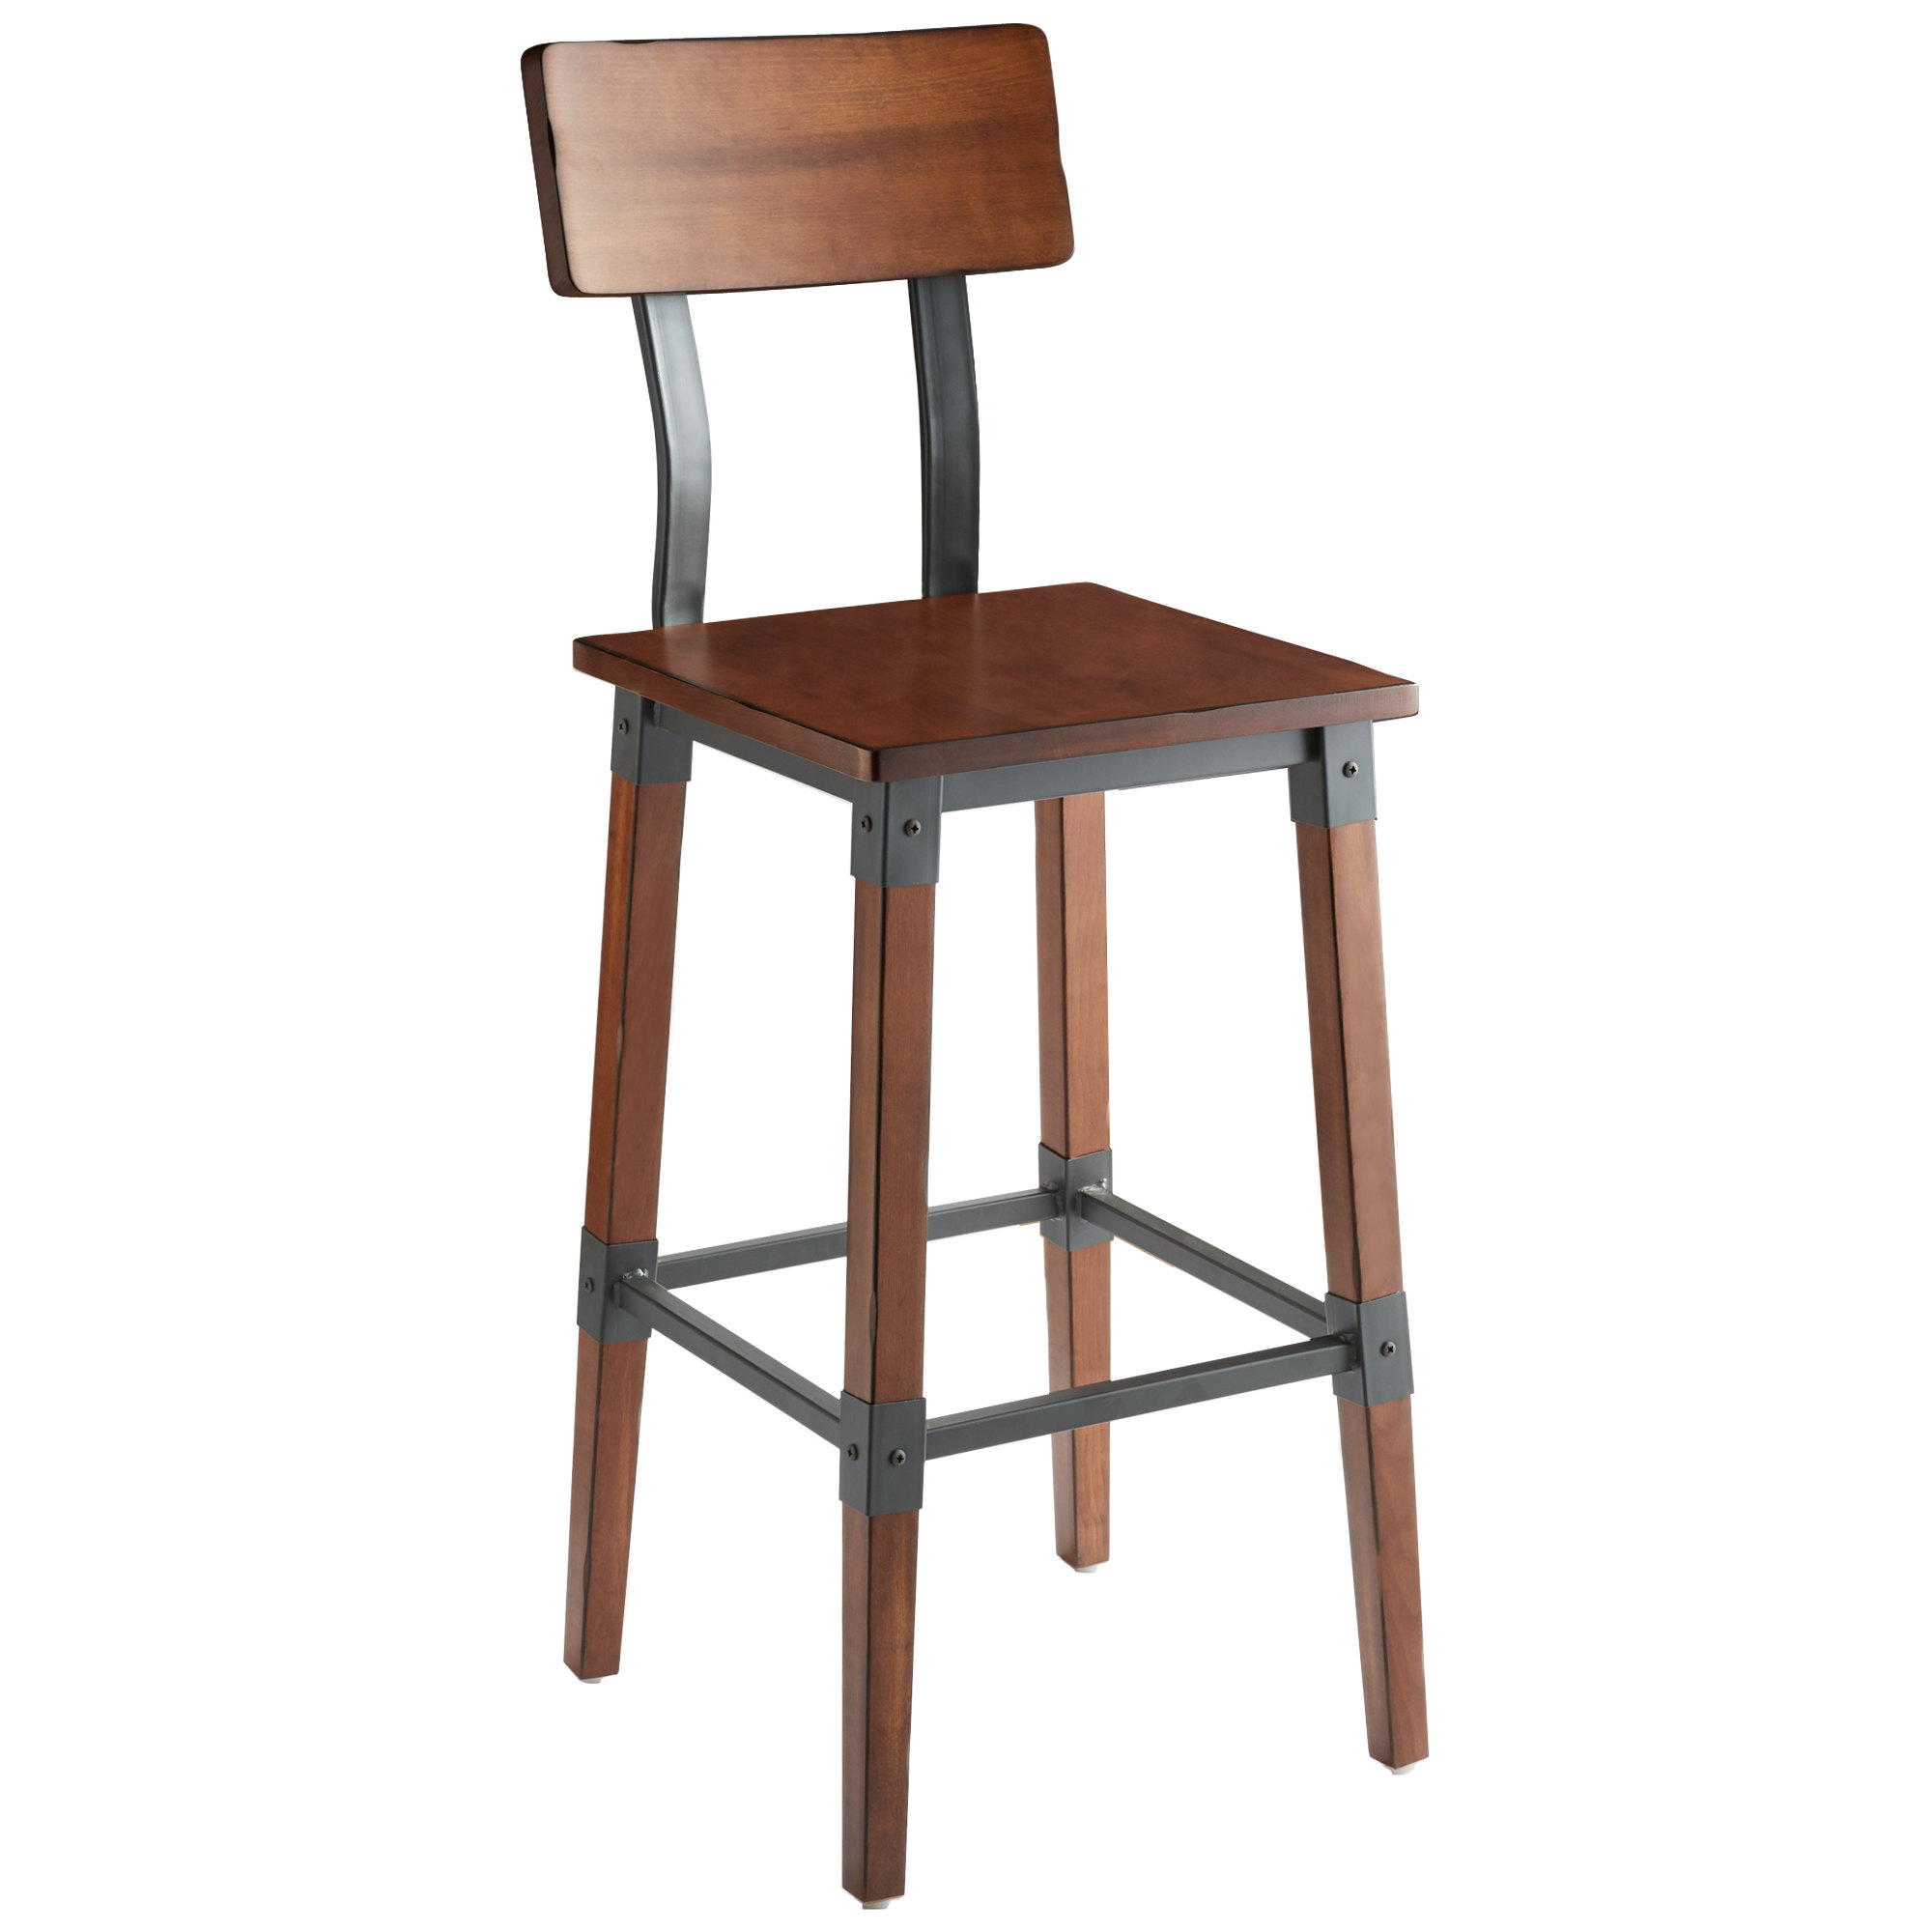 #77 - Rustic Industrial Style Bar Height Chair with Antique Walnut Finish